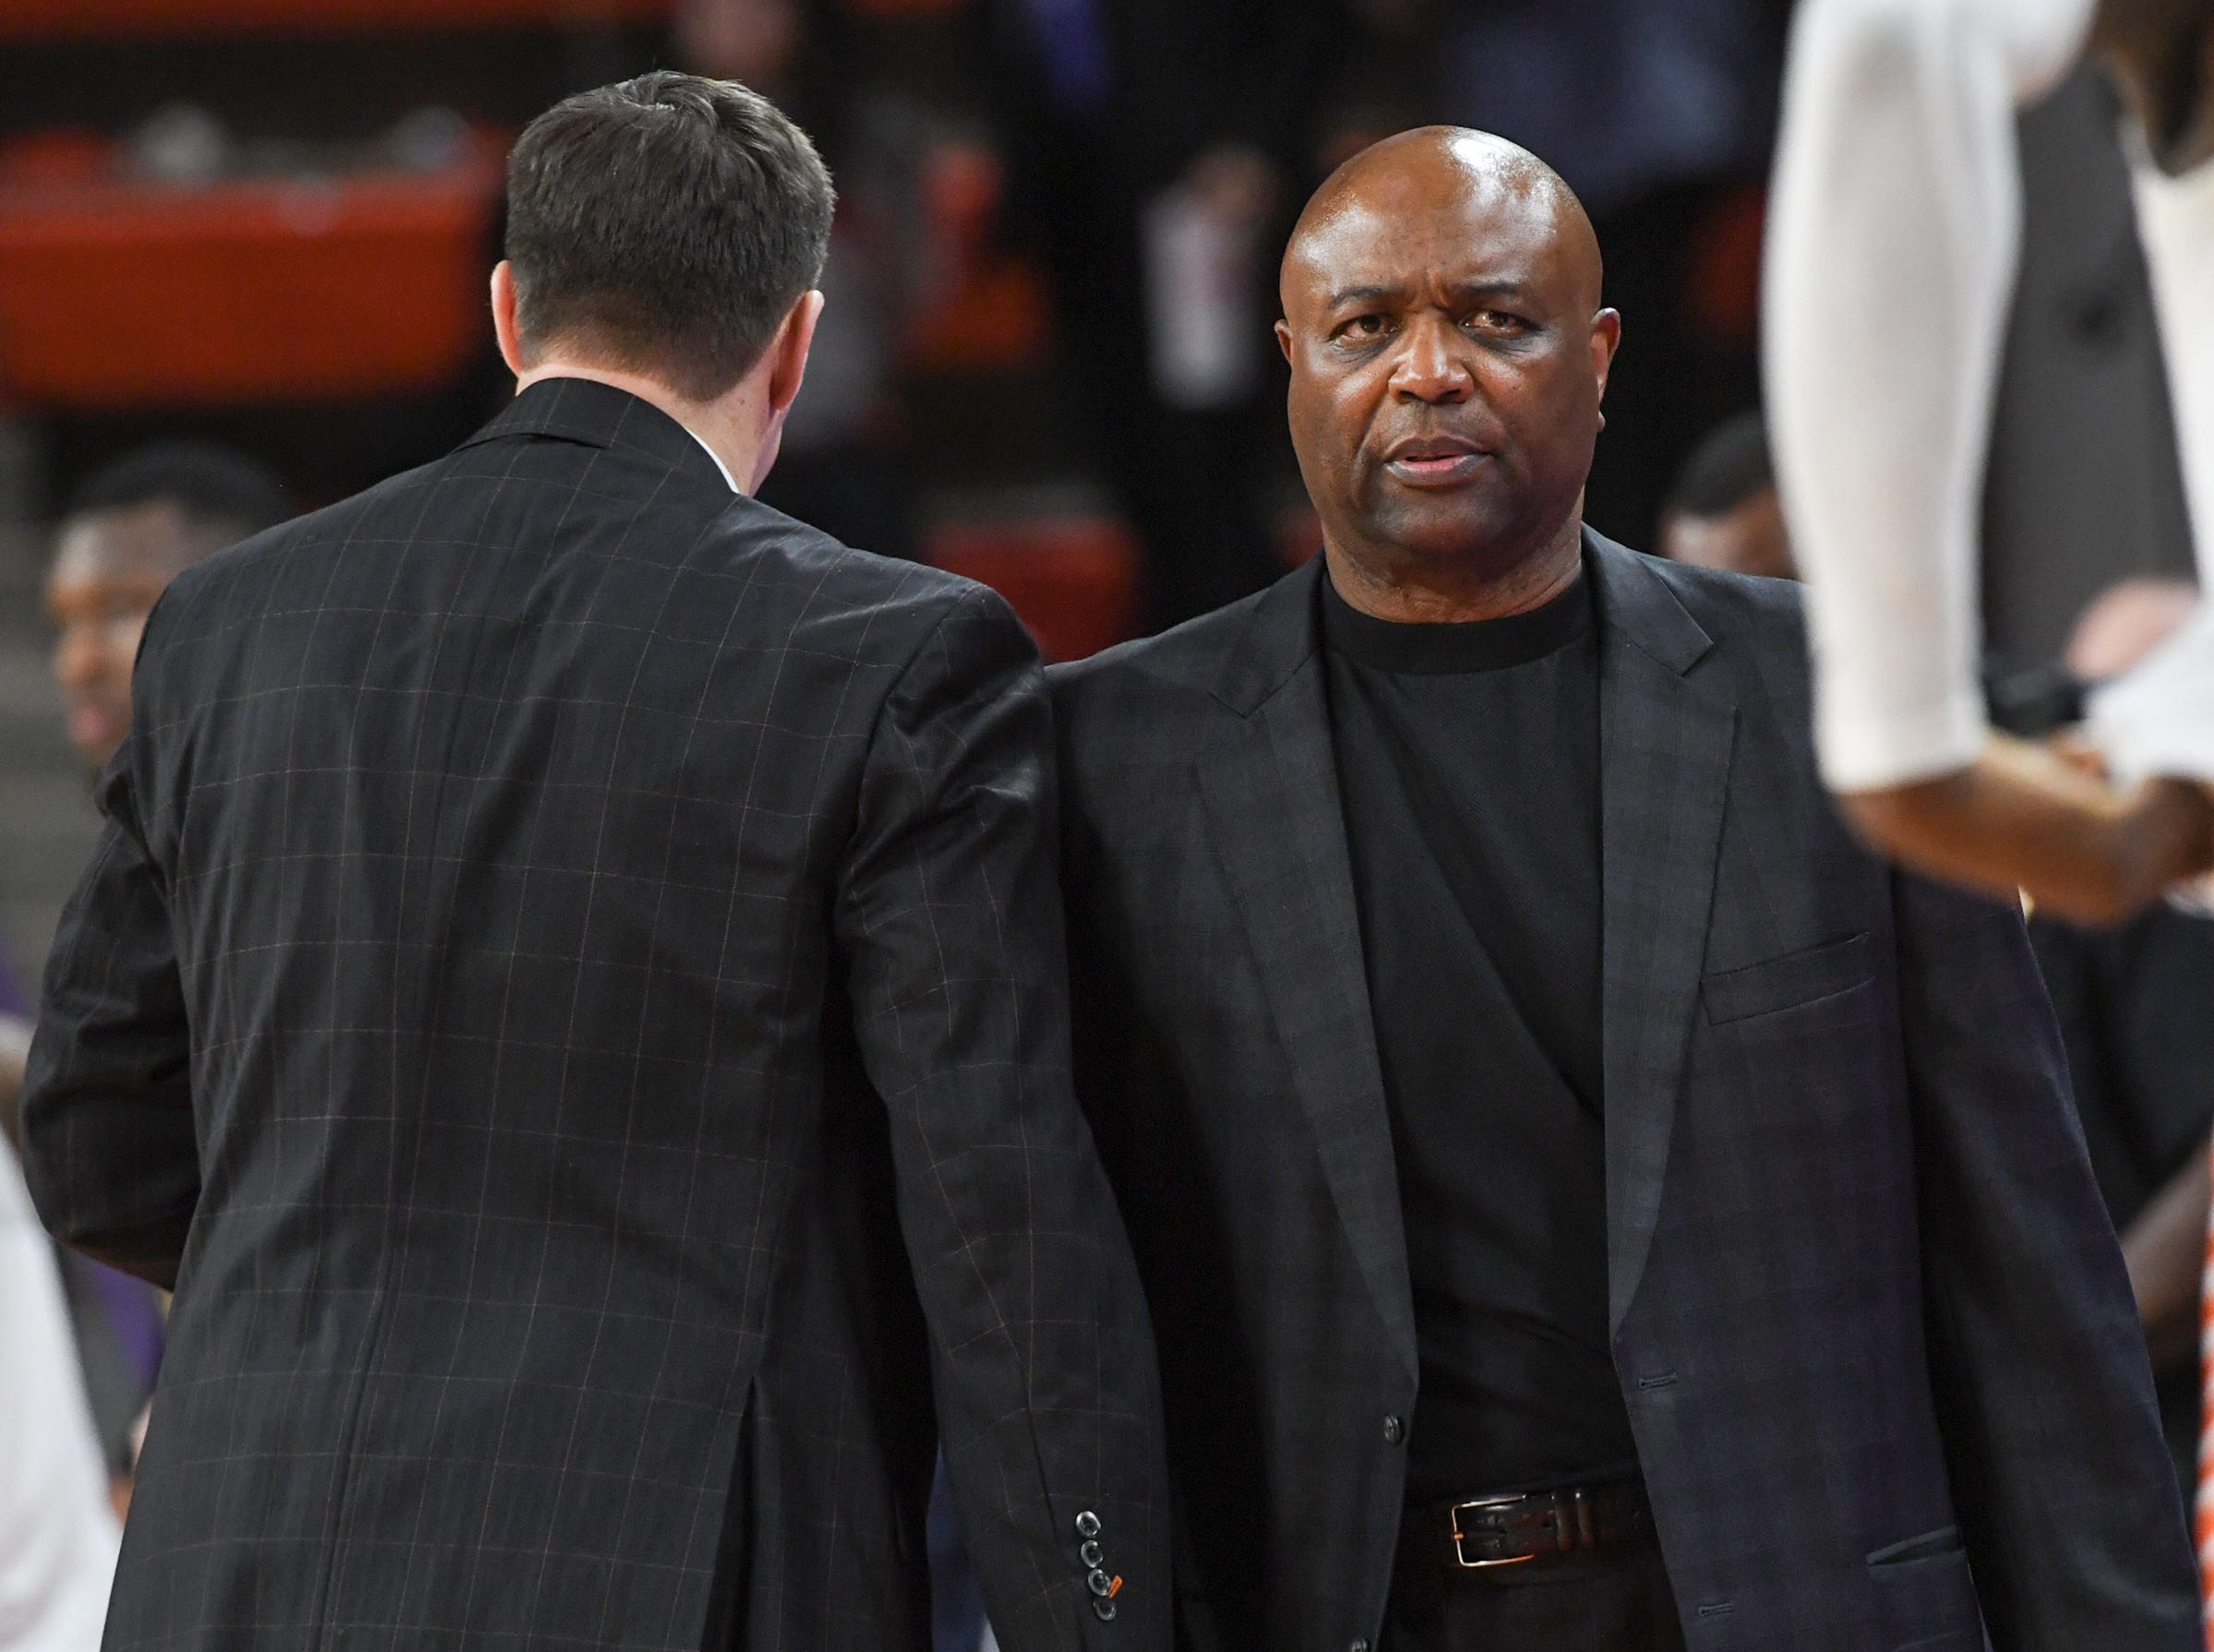 Clemson head coach Brad Brownell, left, shakes hands with Florida State Leonard Hamilton after the game at Littlejohn Coliseum in Clemson Tuesday, February 19, 2019.